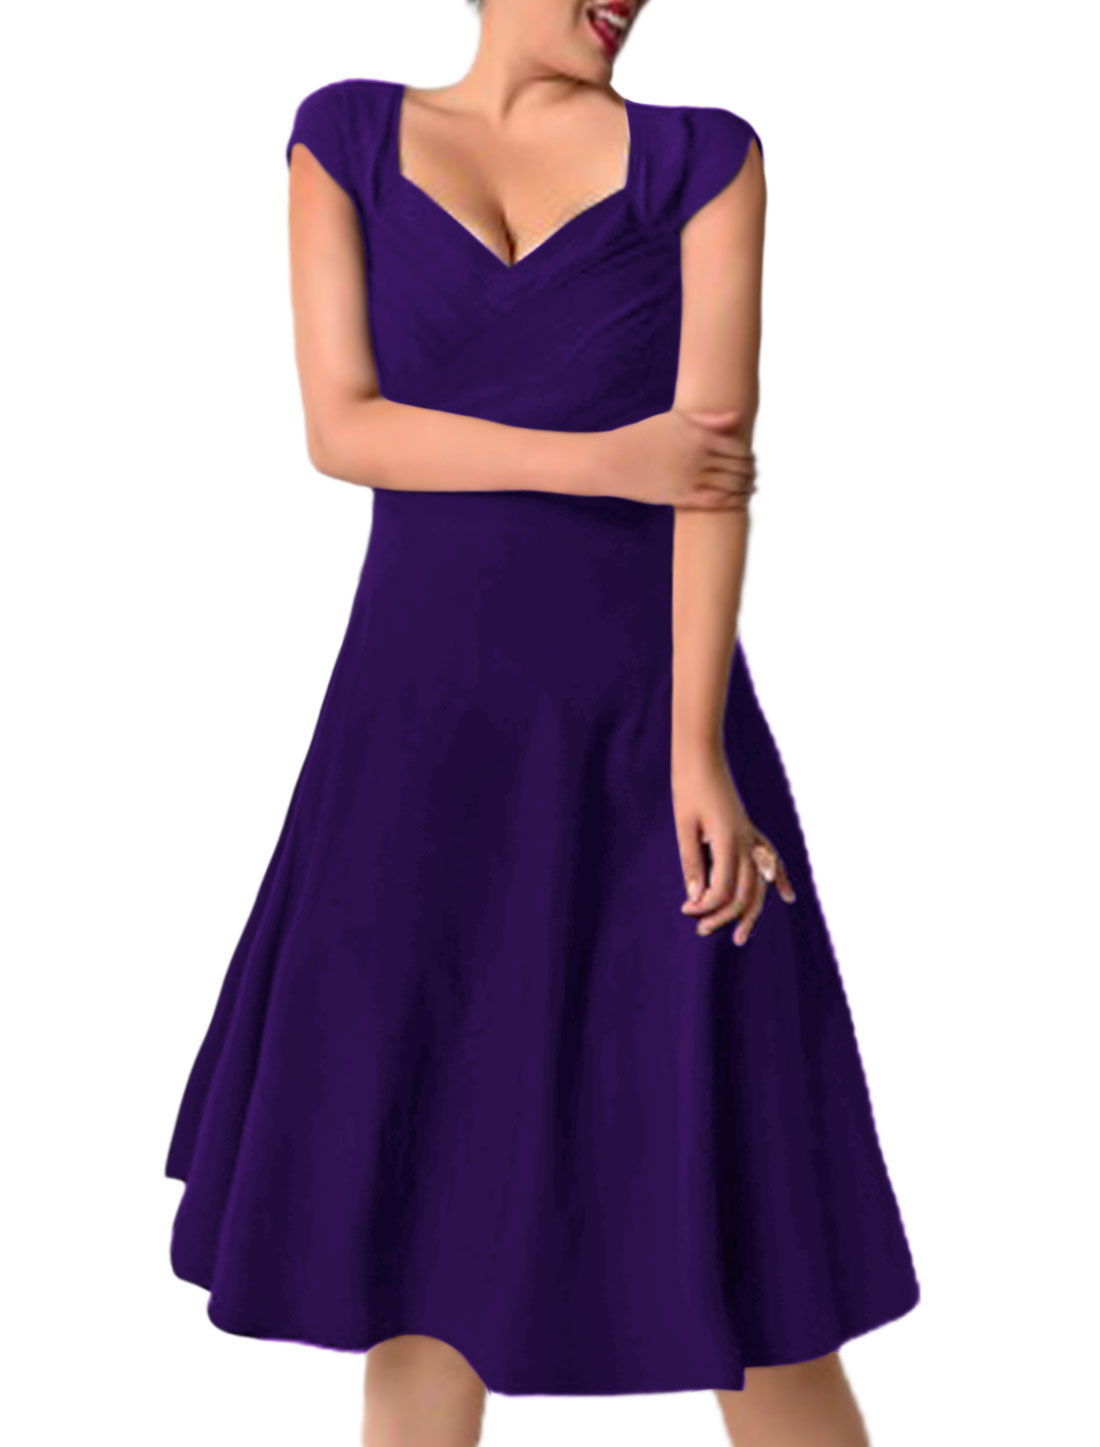 Women Ruched Asymmetric Neck Below Knee Fit and Flare Dress Purple M